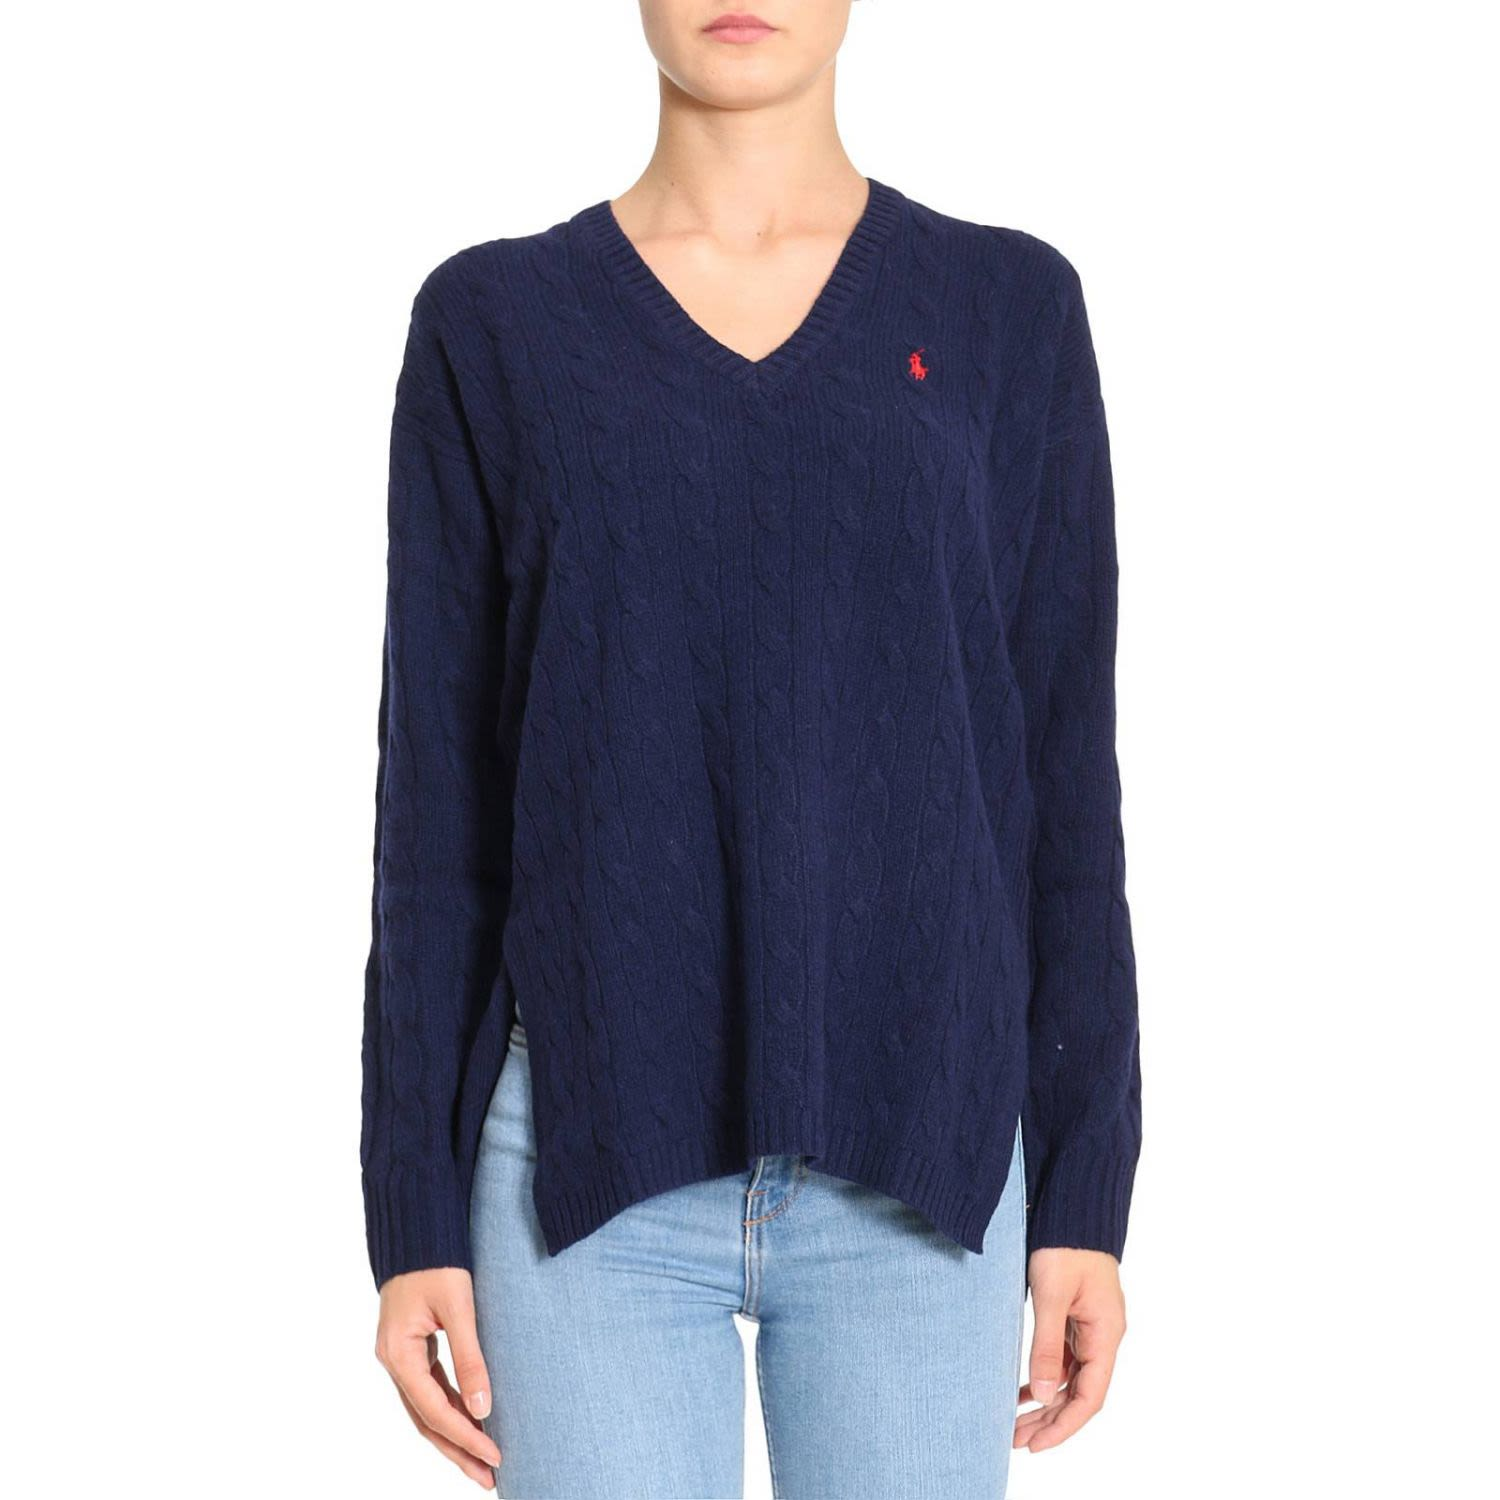 Sweater Sweater Women Polo Ralph Lauren